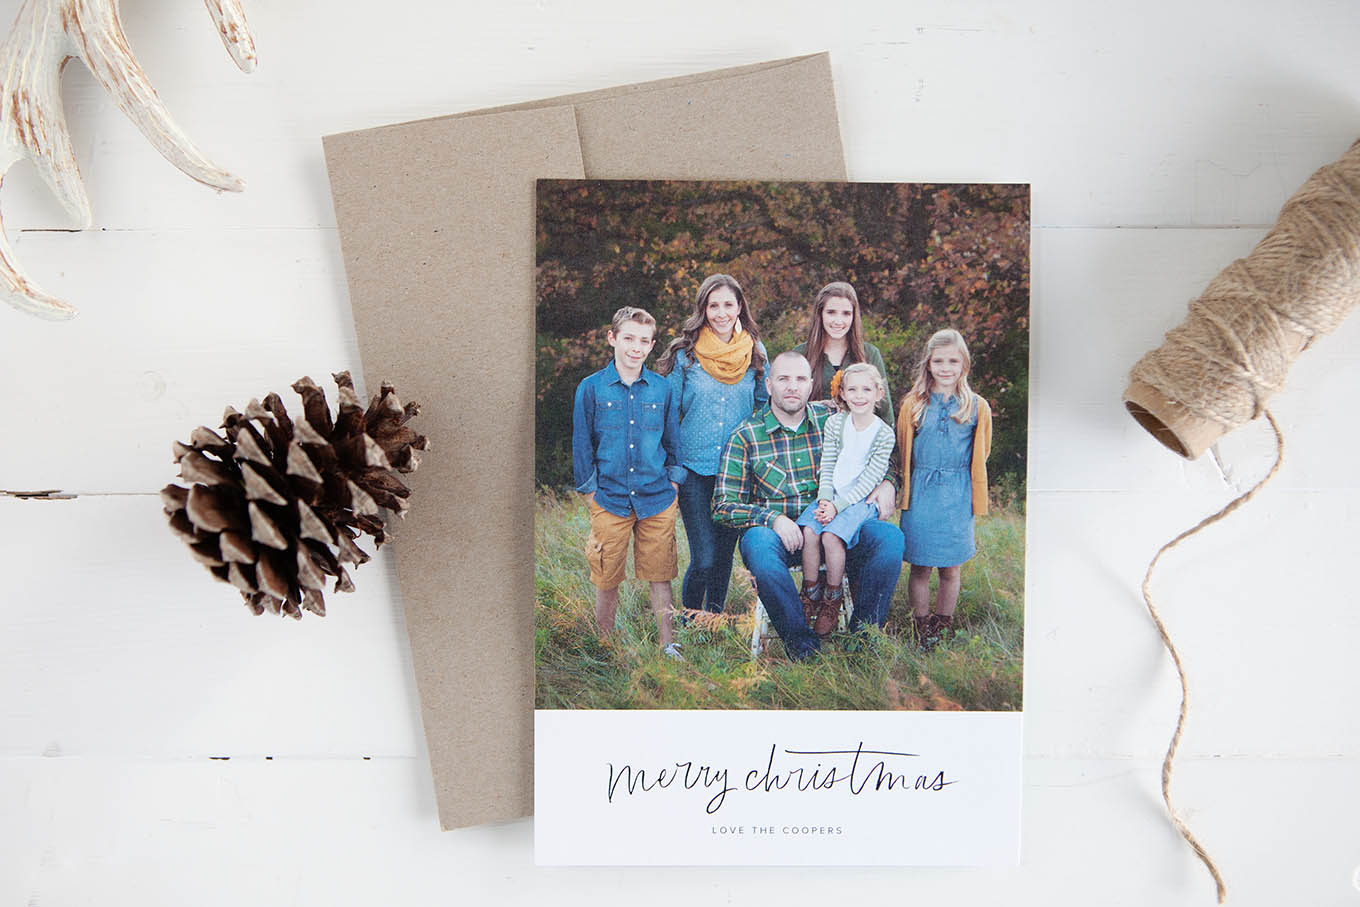 In this day of instant messages and overflowing inboxes, a handwritten card can mean so much. Sending heartfelt holiday cards is a tradition worth holding onto.